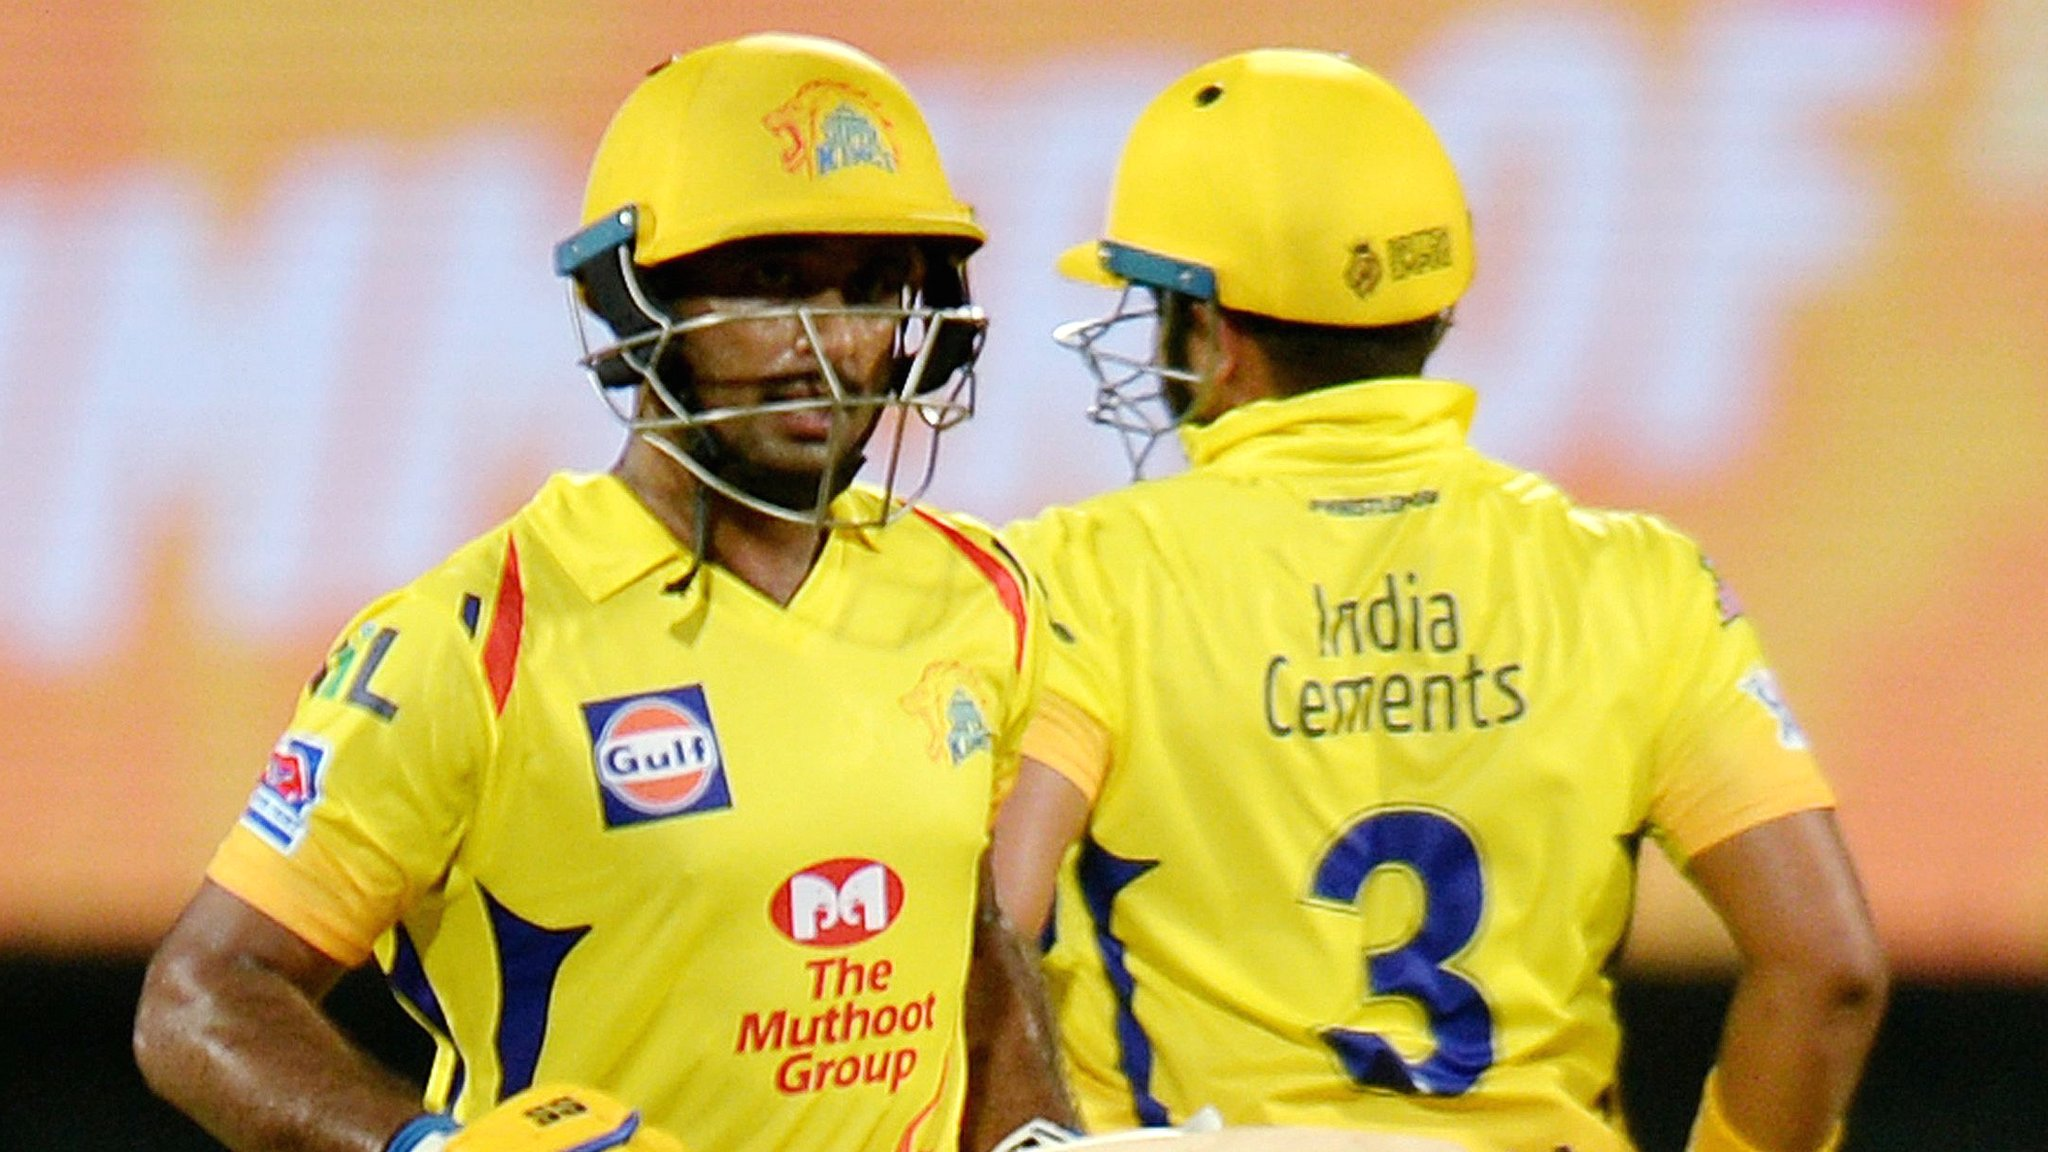 Indian Premier League: Chennai Super Kings beat Royal Challengers Bangalore in opener